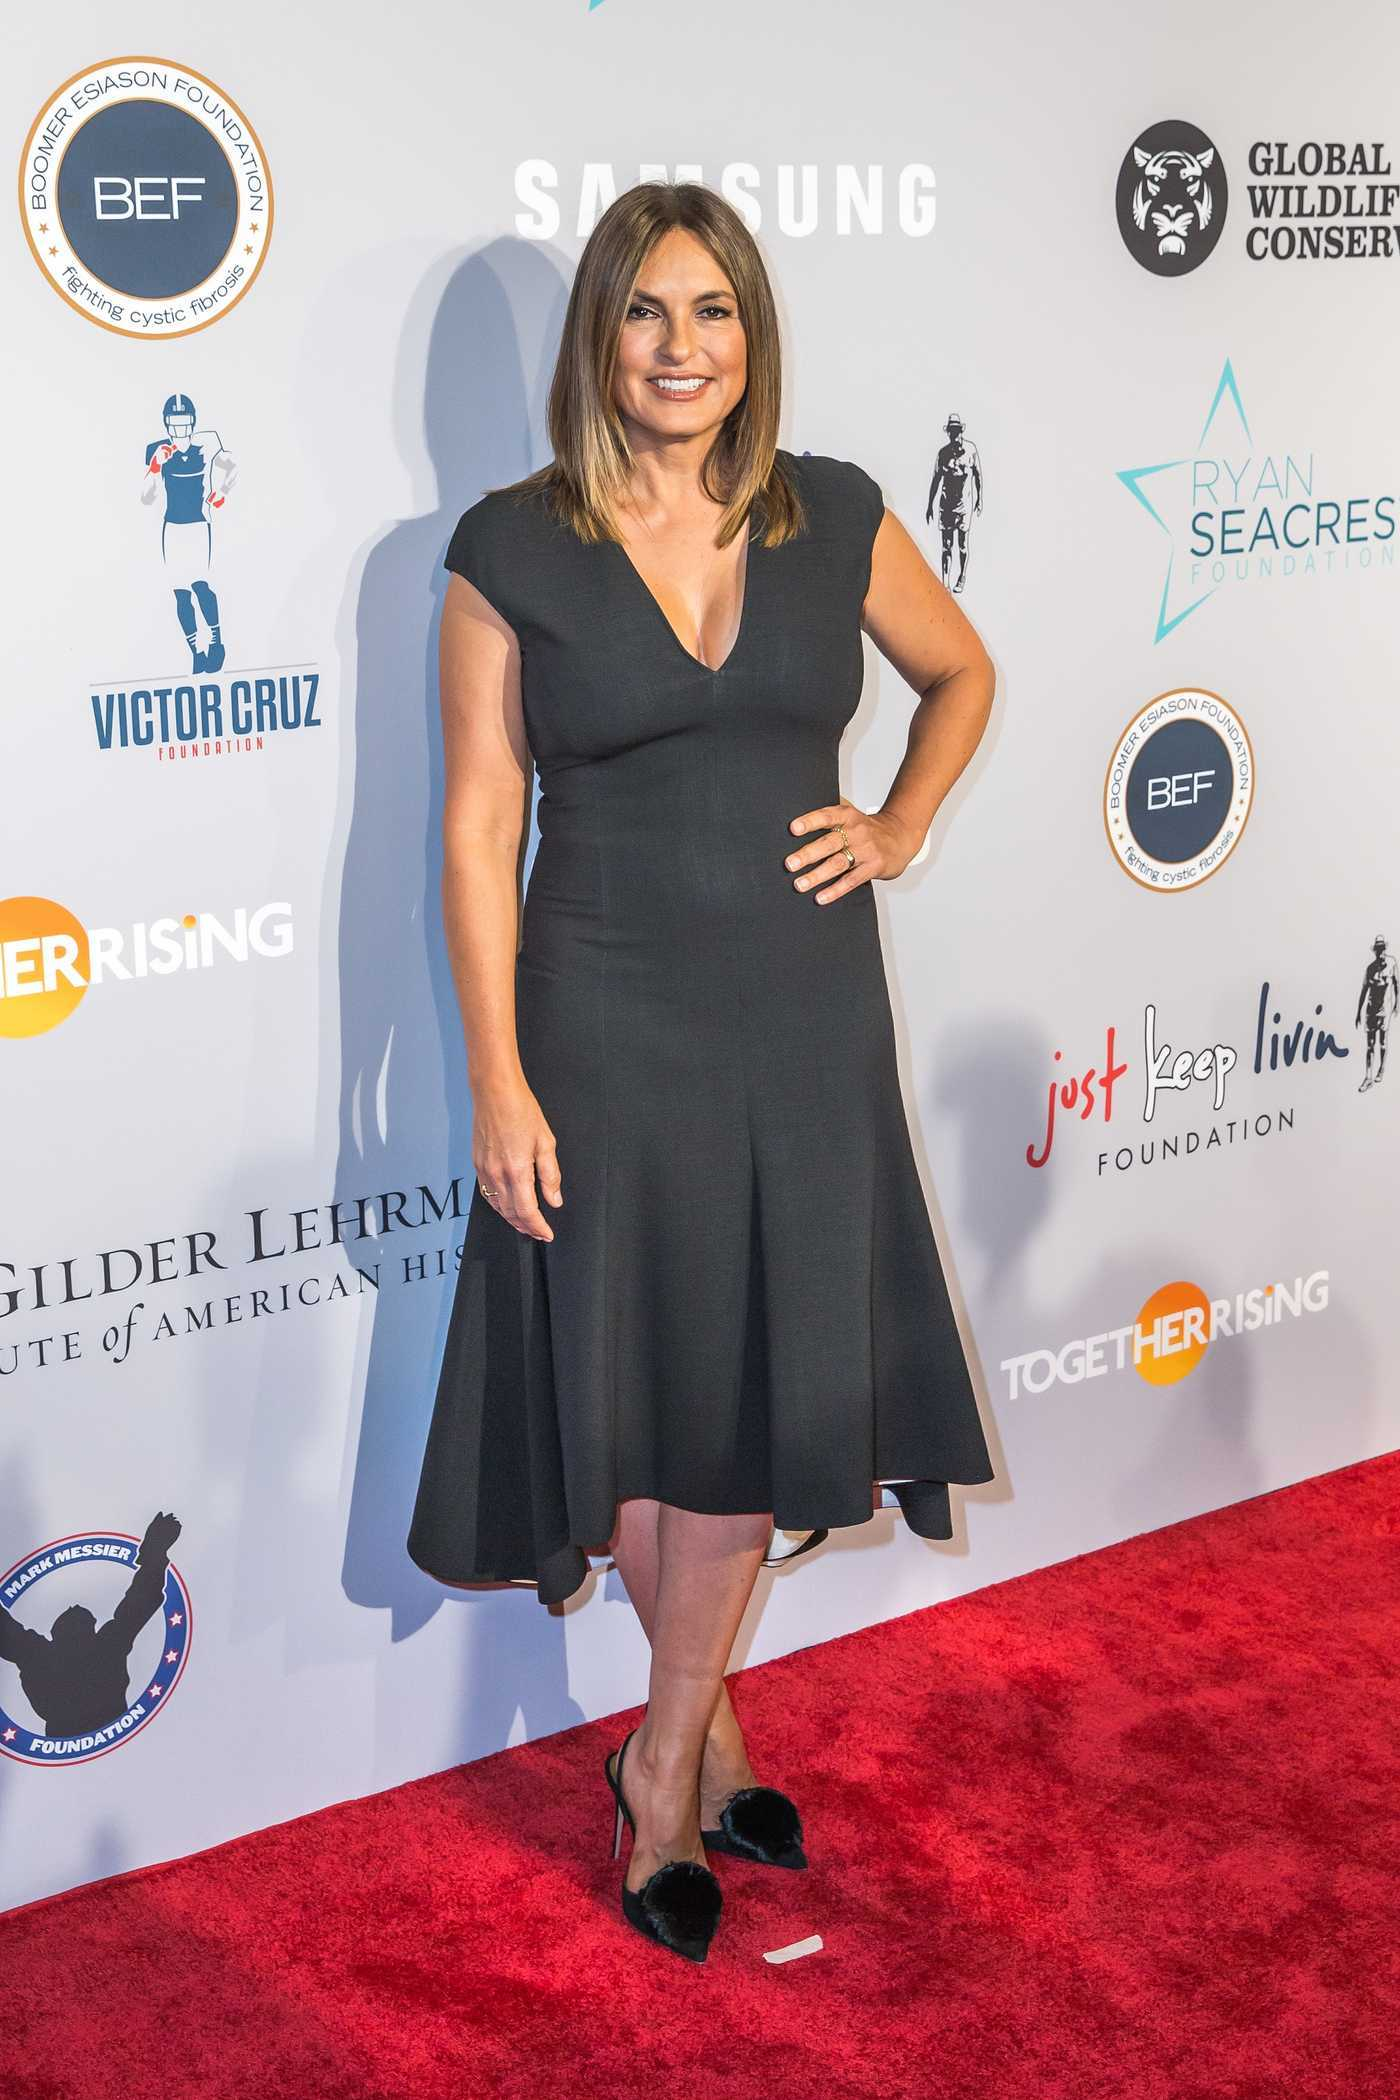 Mariska Hargitay at Samsung Charity Gala in New York City 09/27/2018